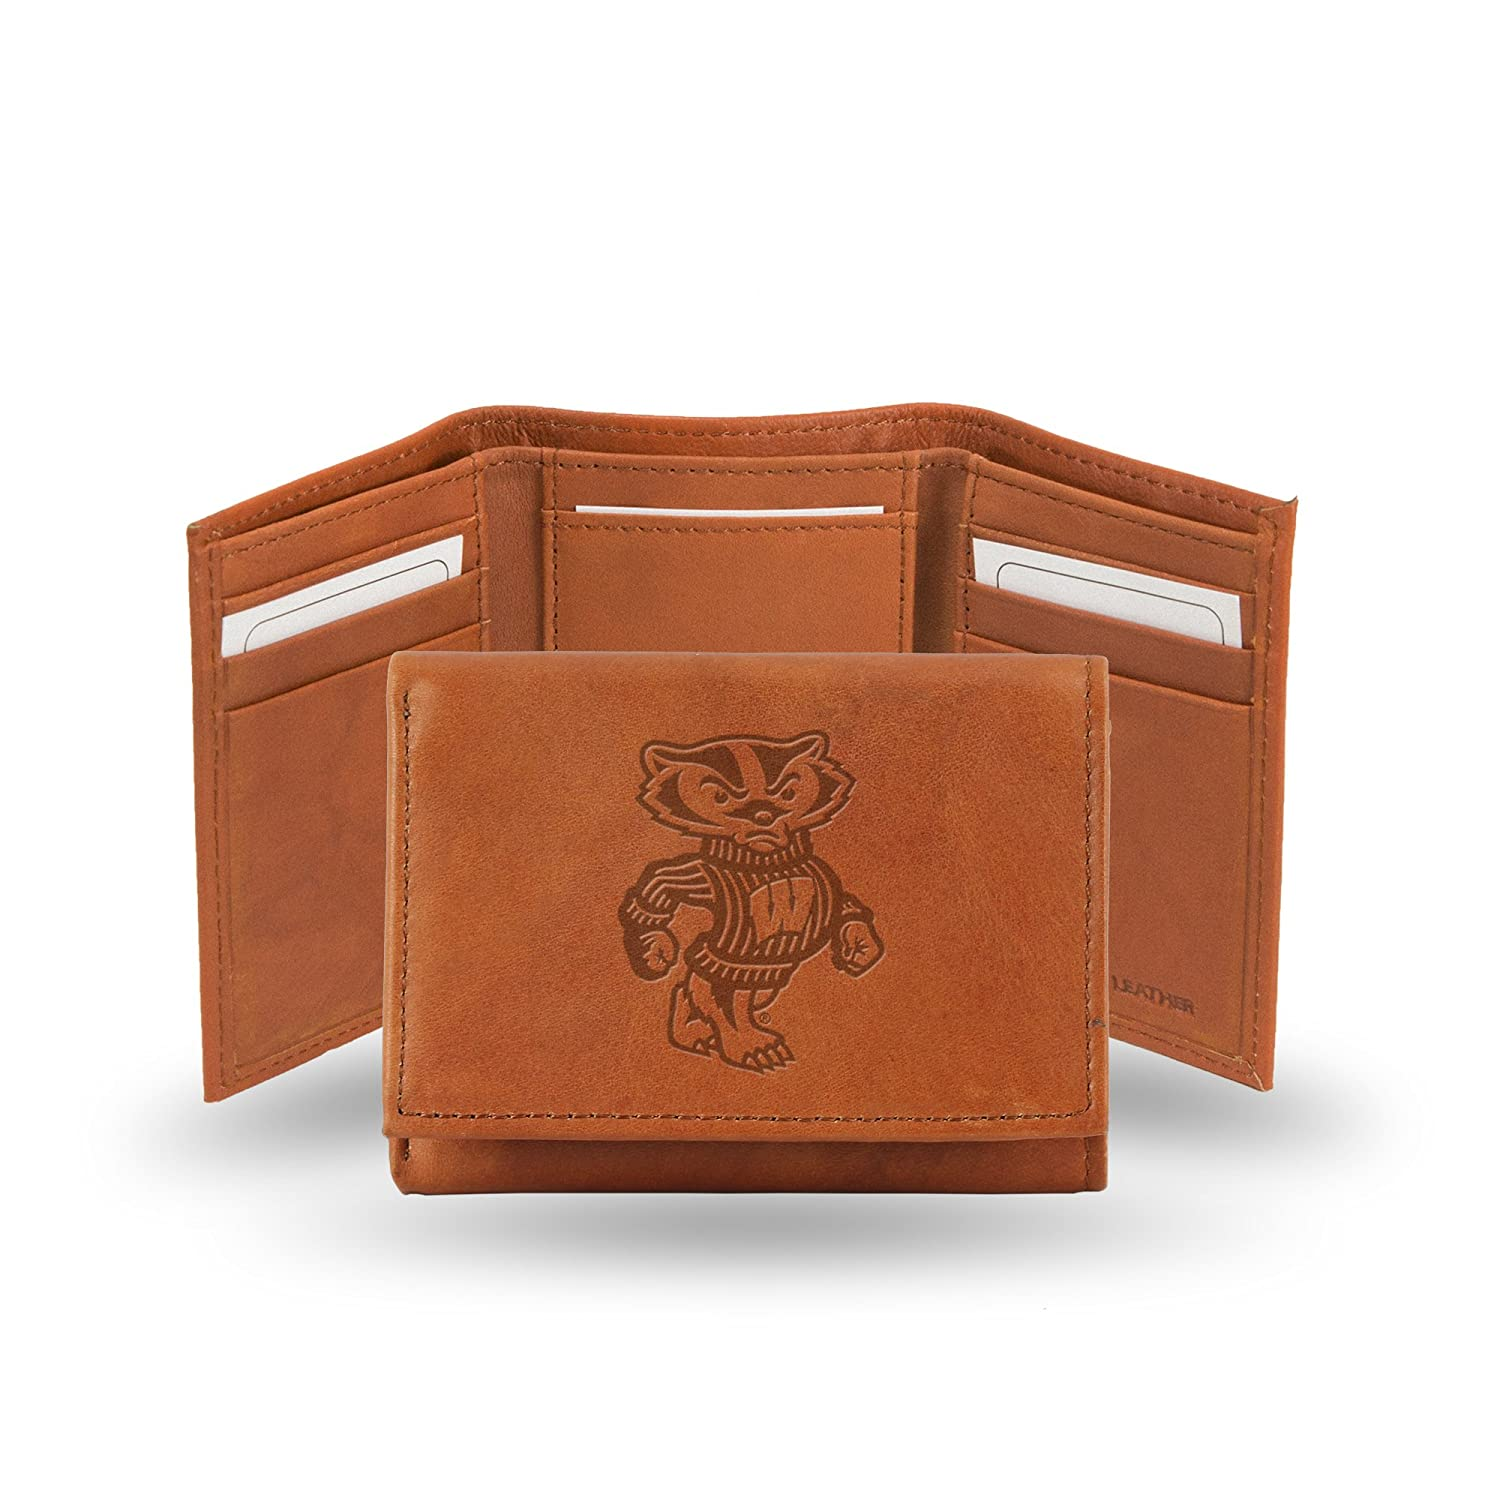 Montana Grizzlies NCAA Embossed Leather Billfold Wallet NEW in Gift Tin